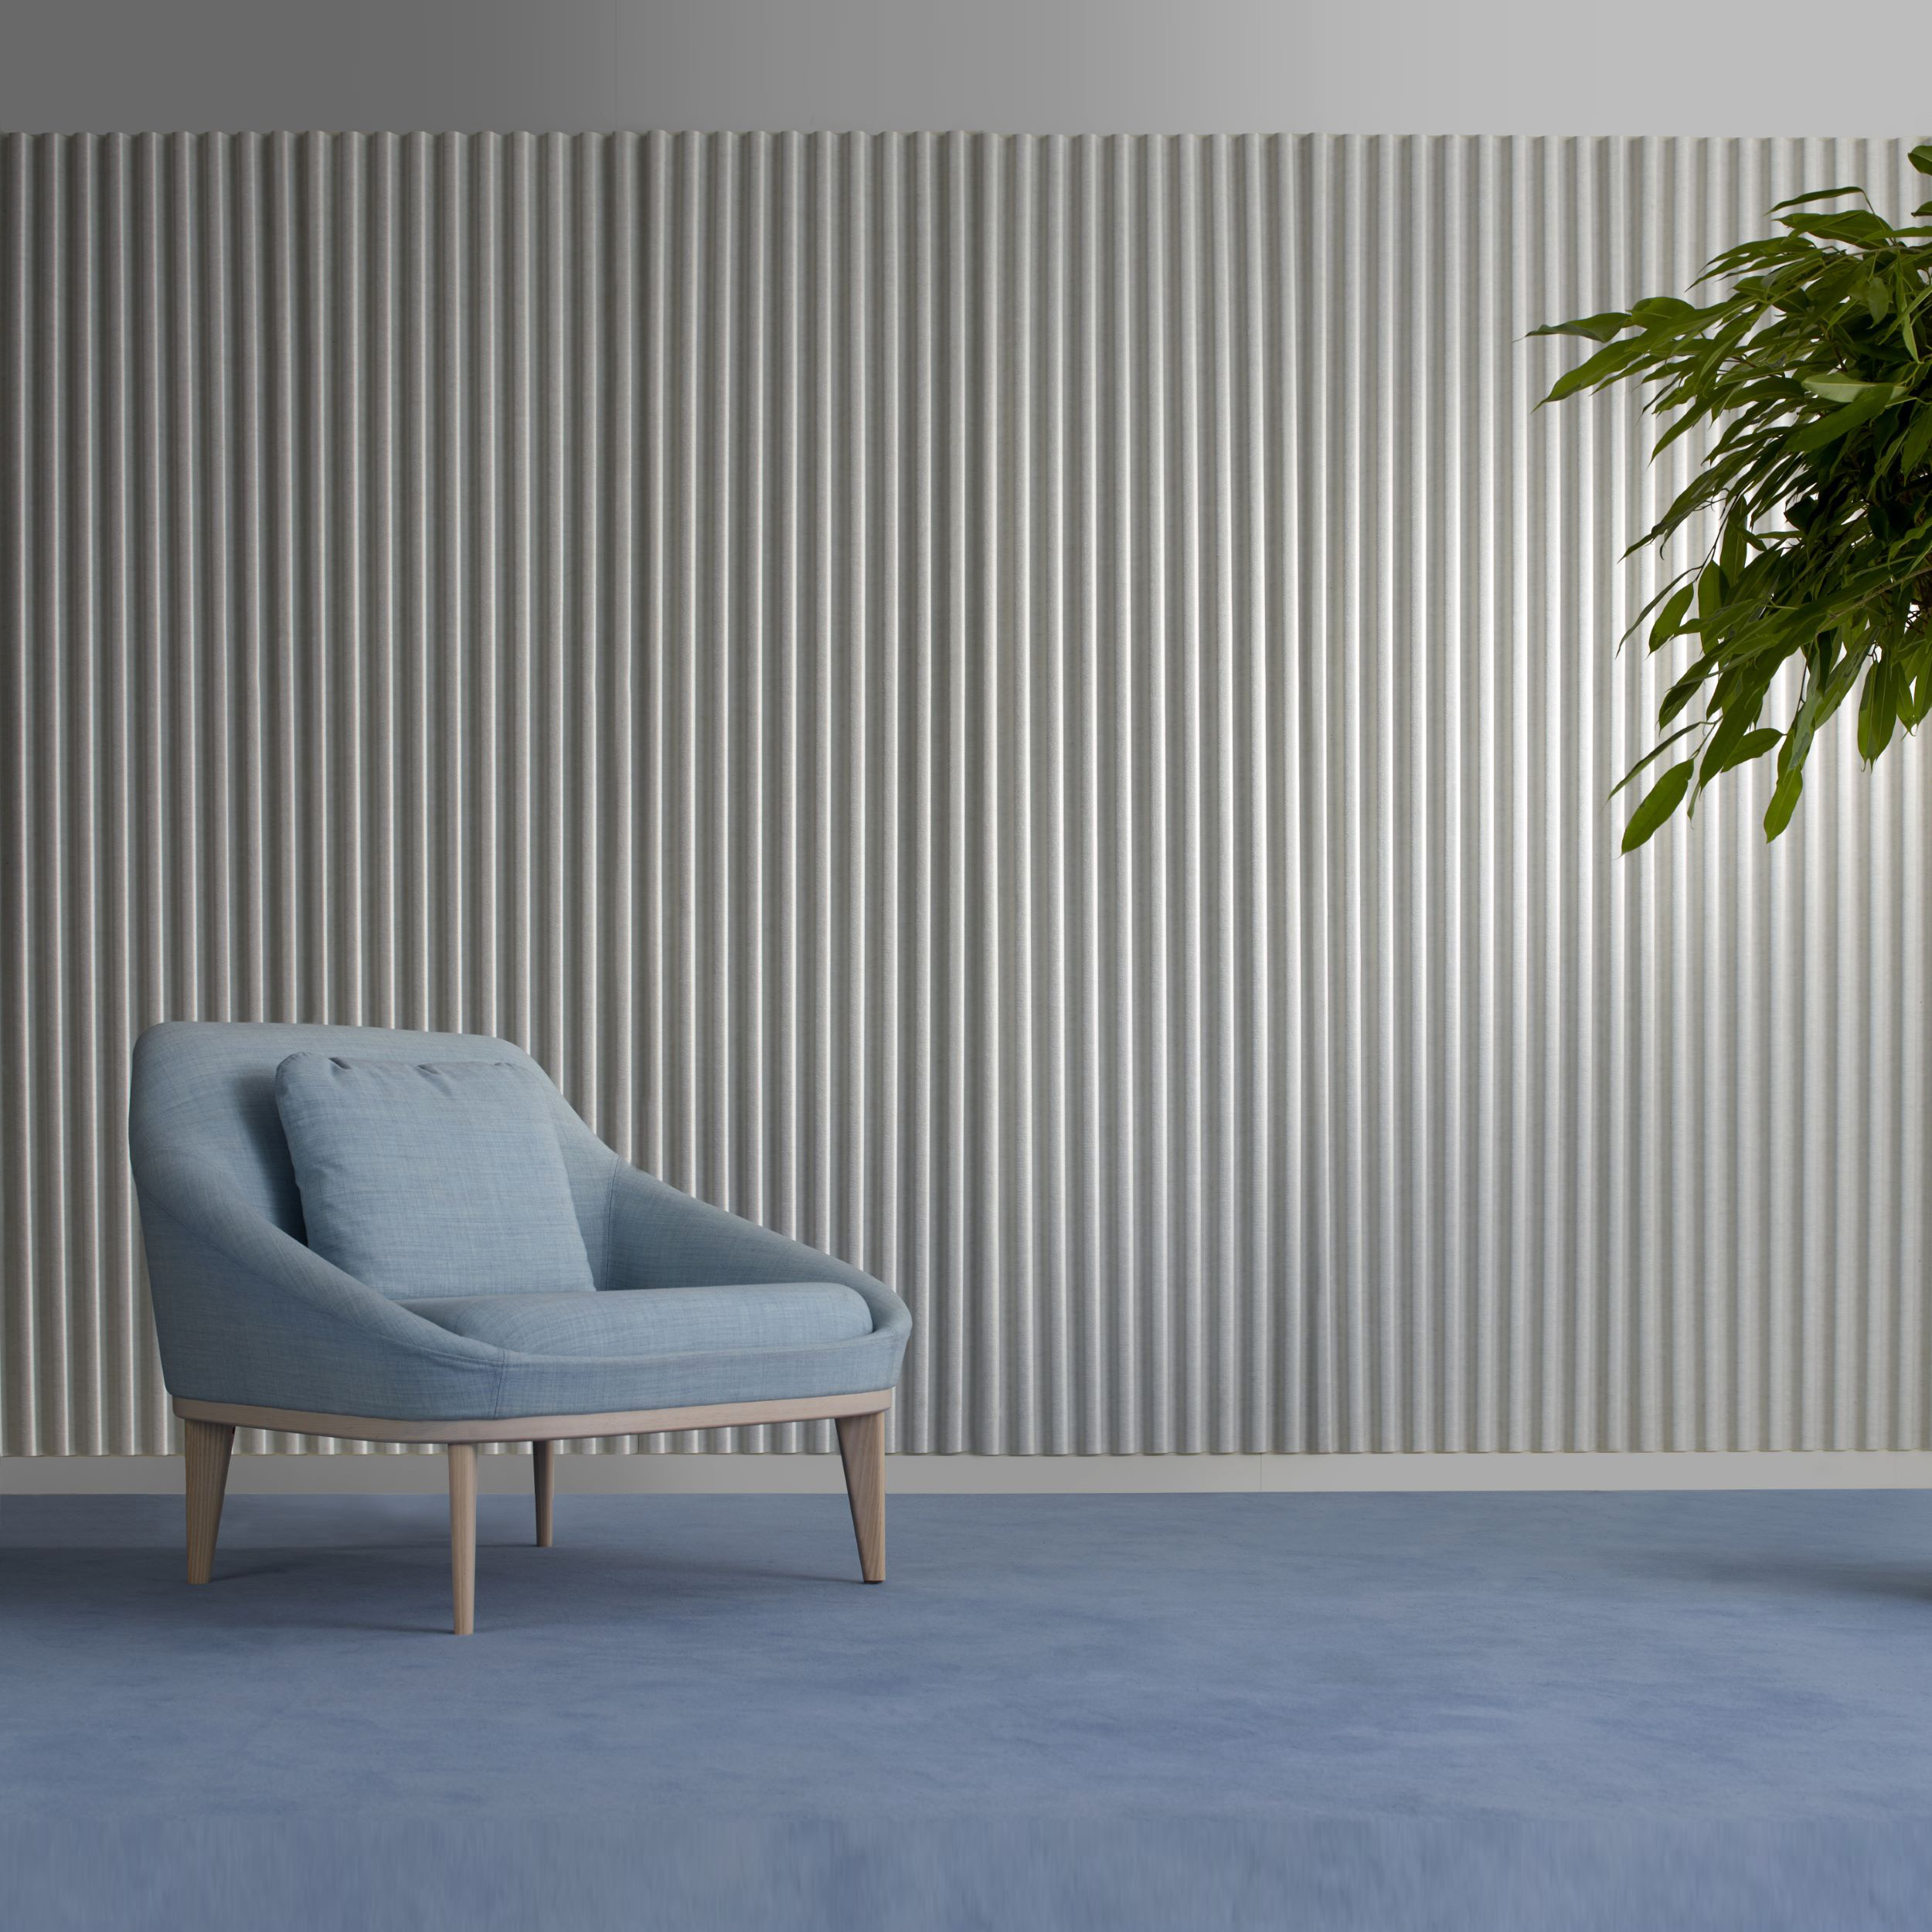 Soundwave 174 Wall Acoustic Panel By Christophe Pillet